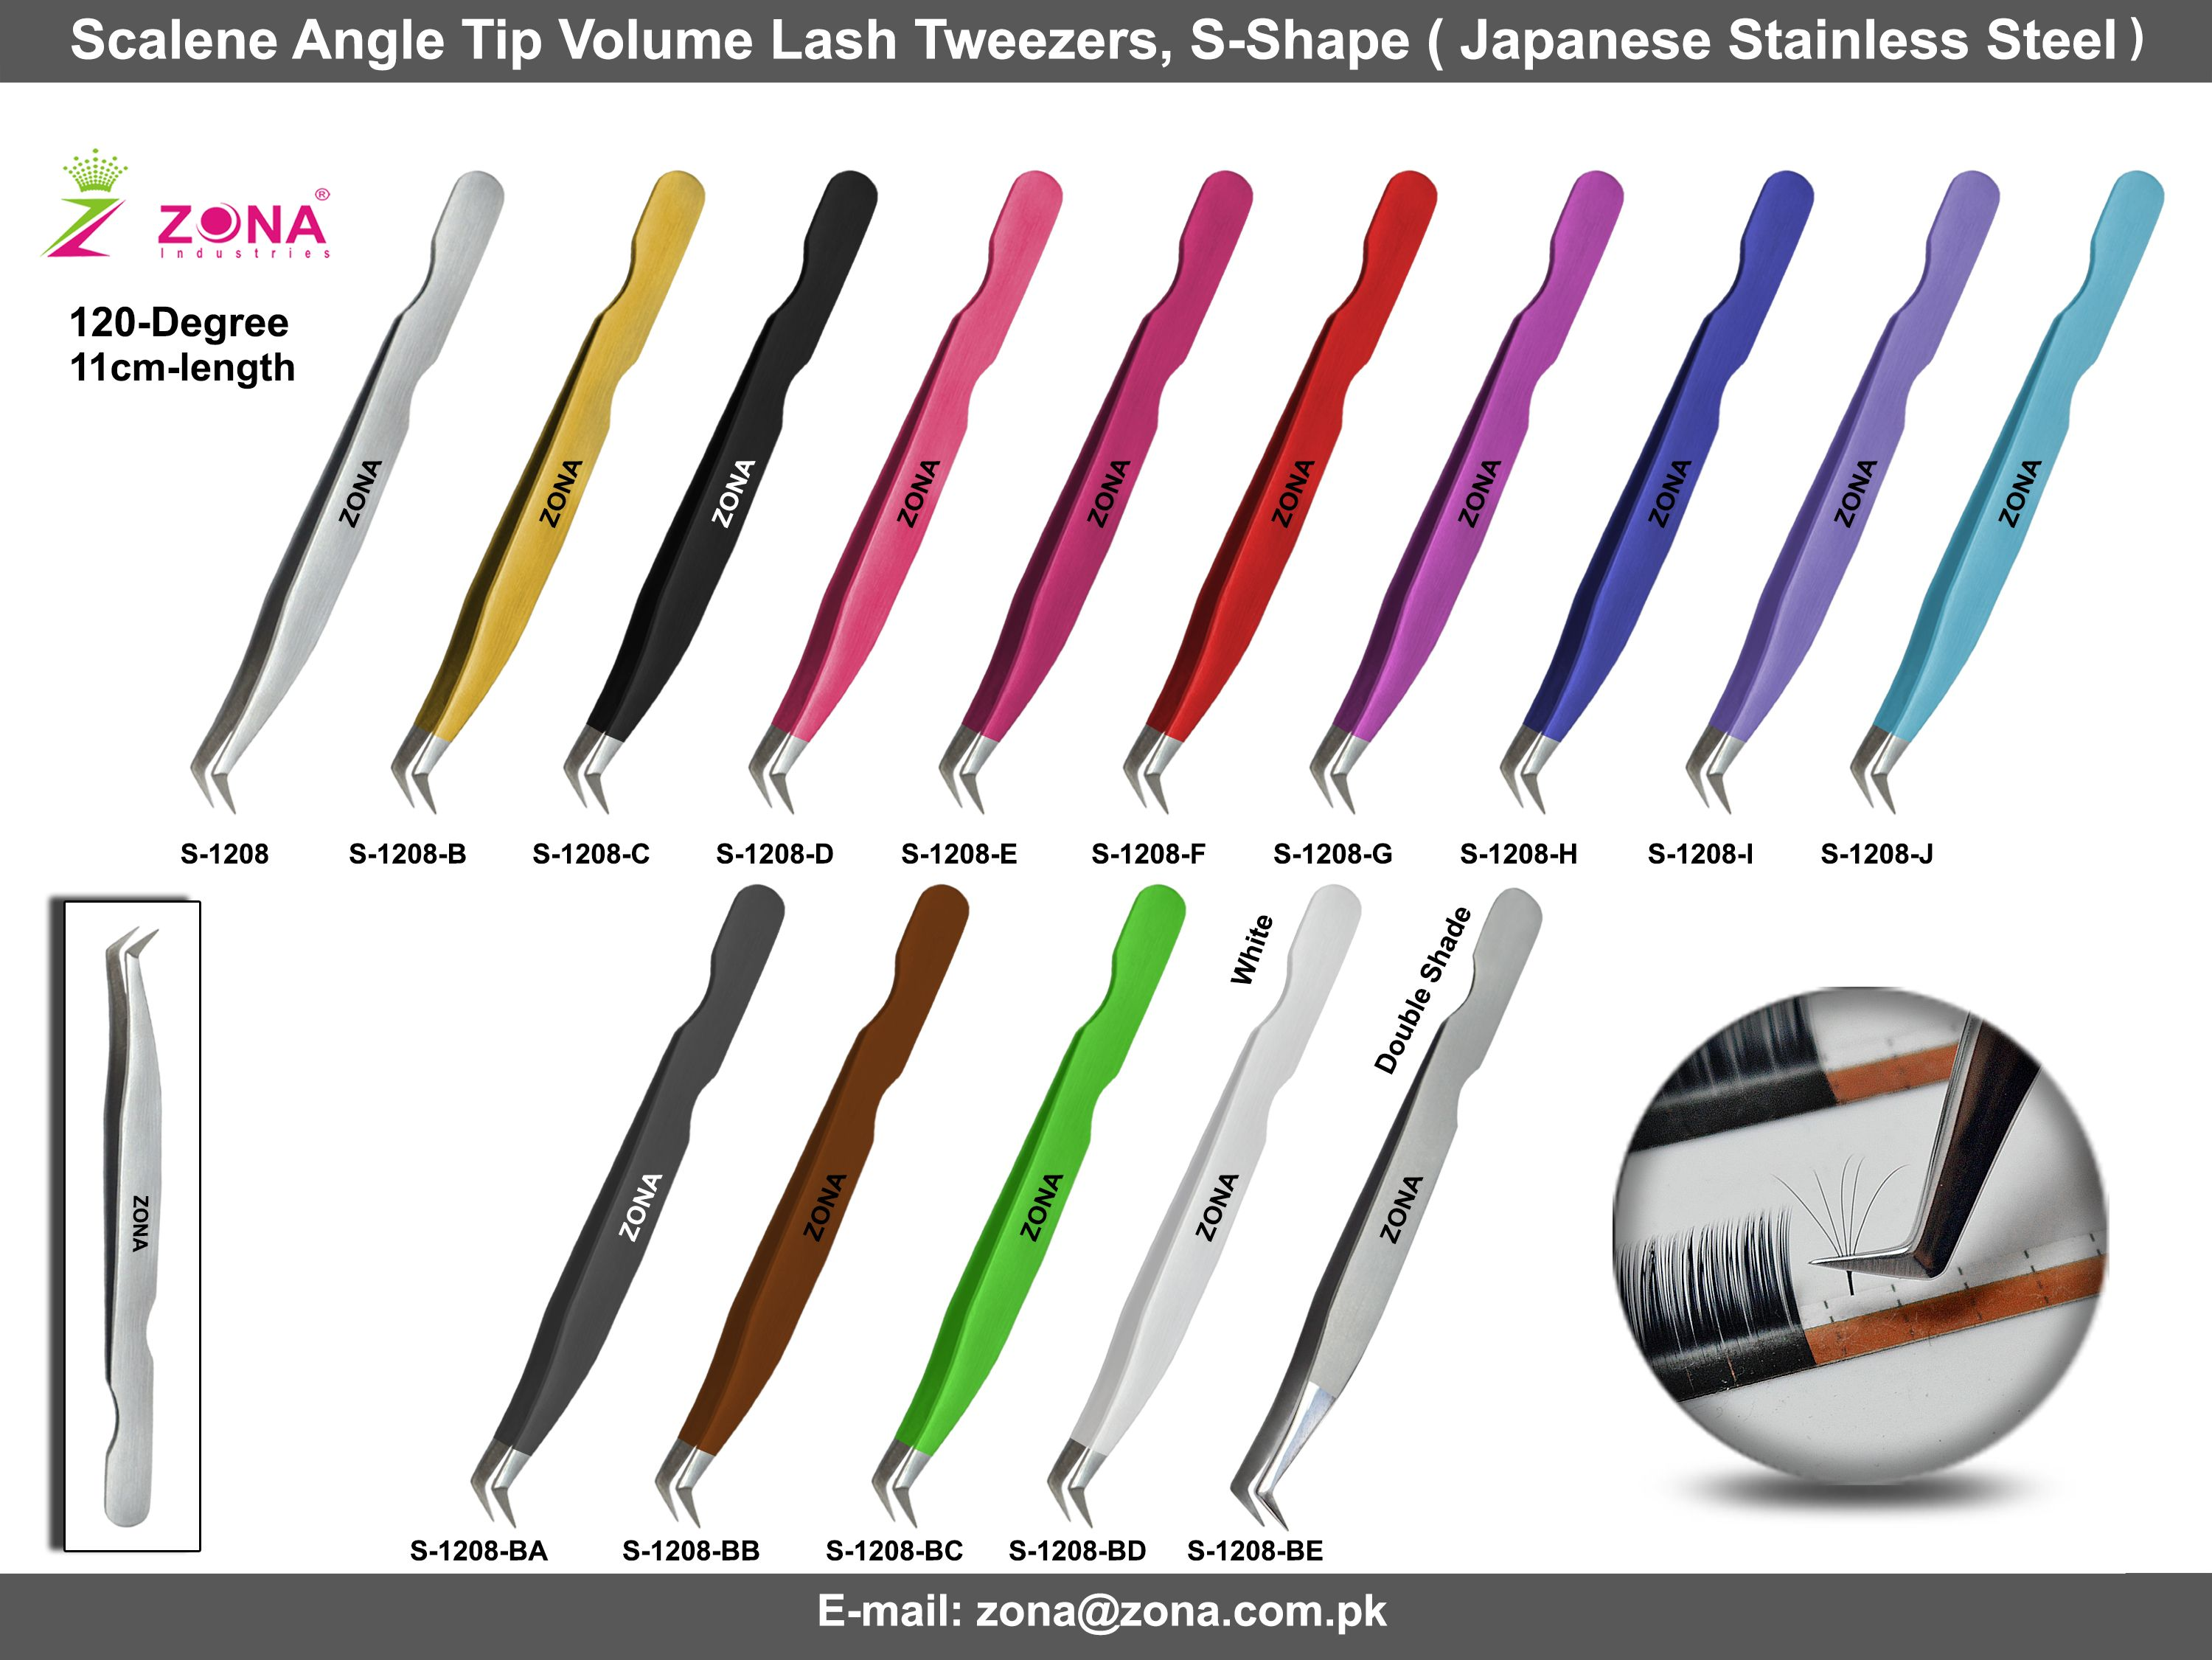 2633ede775b Manufacture and suppliers of eyelash extension tweezers and volume lash  tweezers from ZONA PAKISTAN